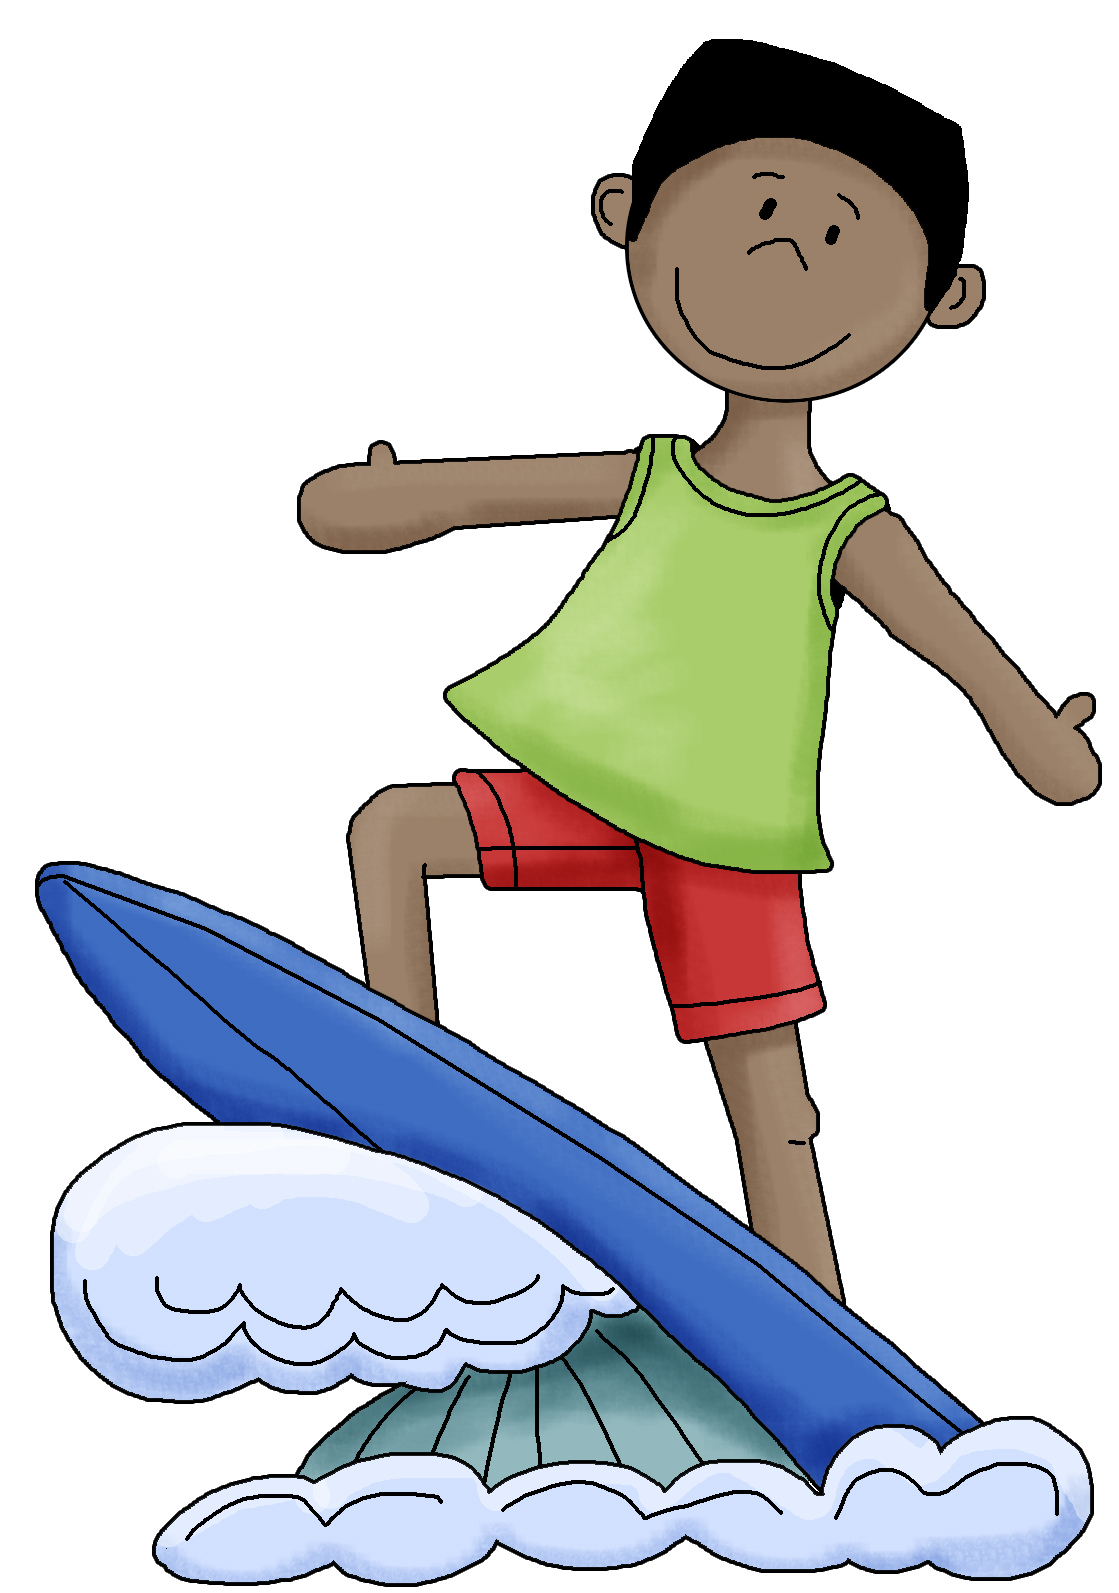 1950 surf clipart free download Free Surfer Car Cliparts, Download Free Clip Art, Free Clip Art on ... free download